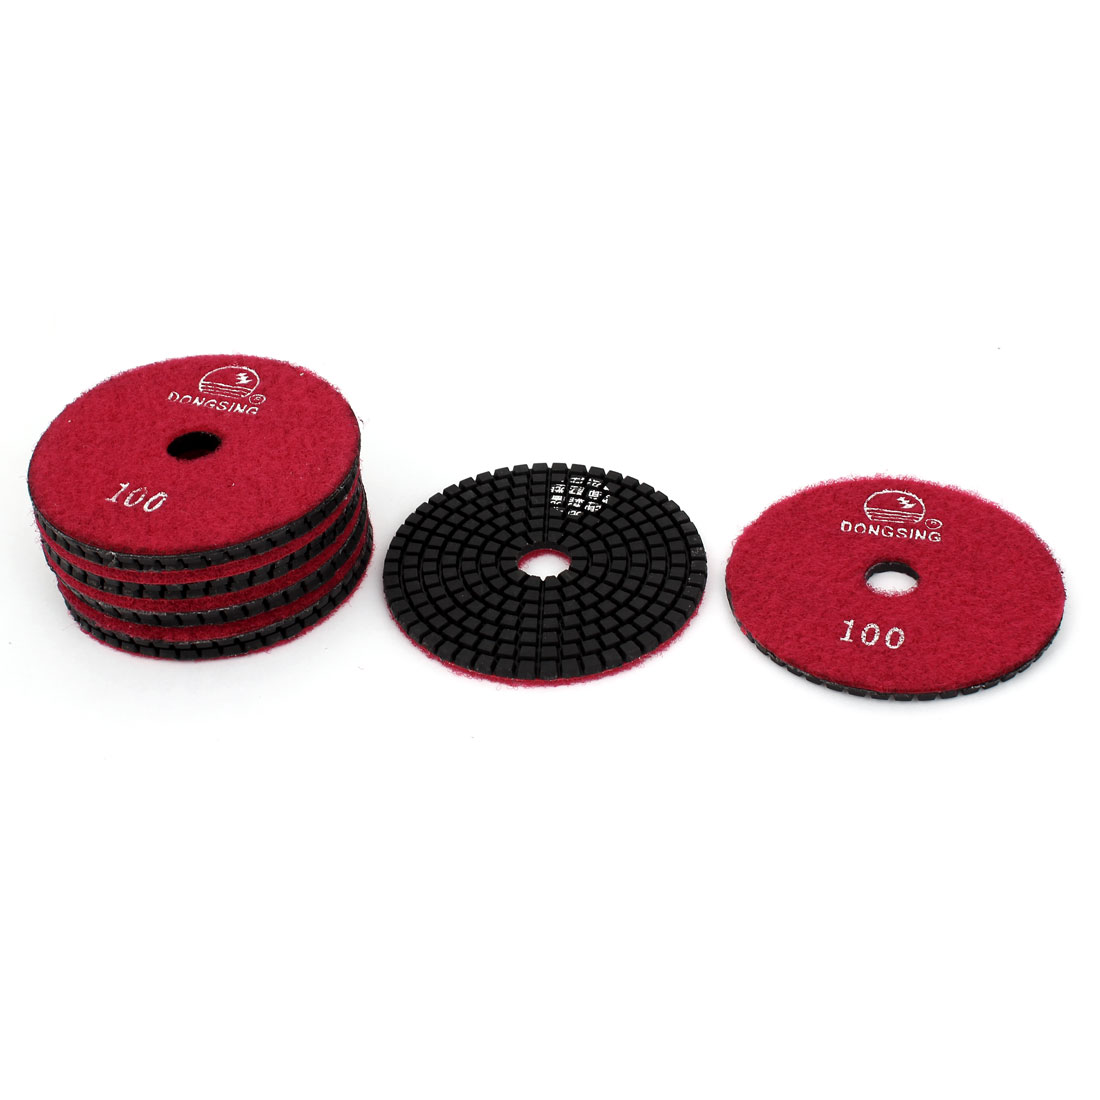 "10pcs 100 Grit 4"" Diameter Wet Diamond Polishing Pads Red for Granite Marble"